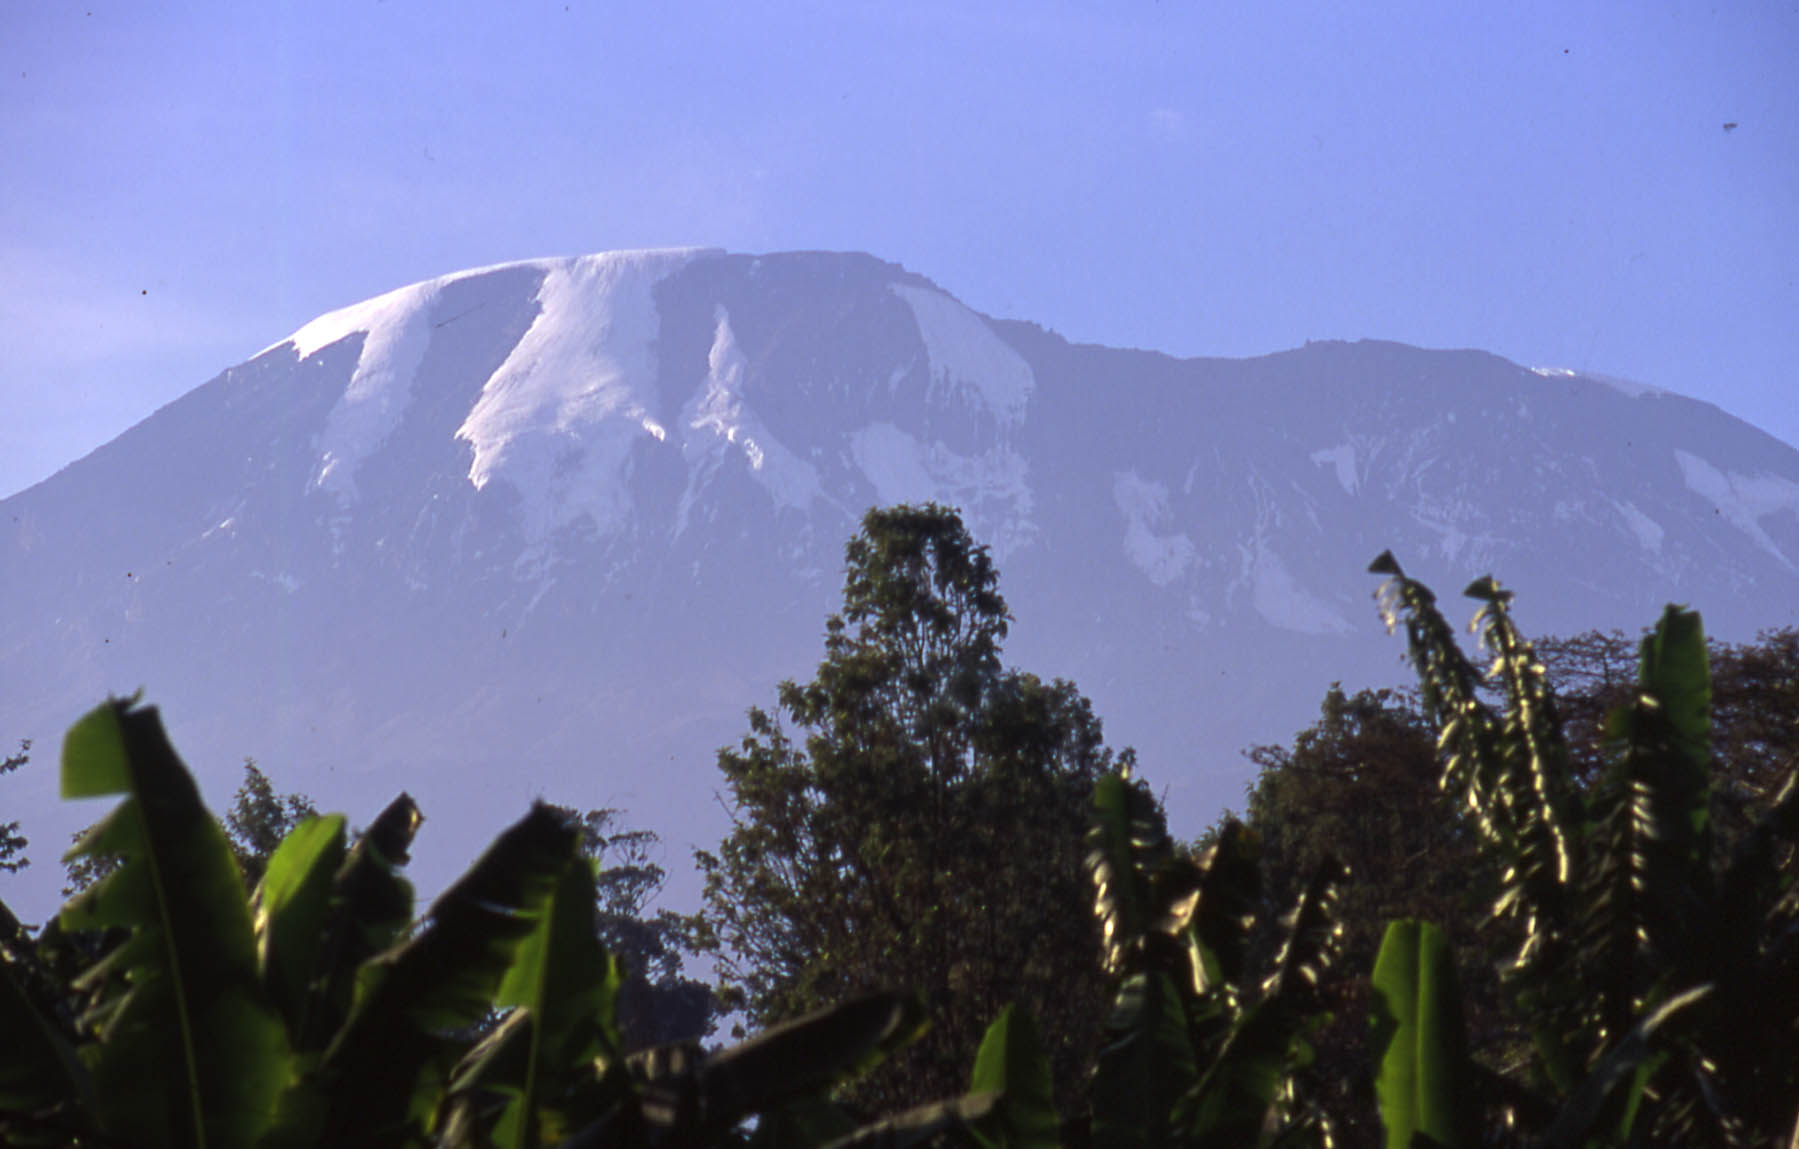 Climbing Kilimanjaro Summit: Kili as Earth Mother - her flanks support rain and cloud forest to 9,500ft - © Arabella Cecil